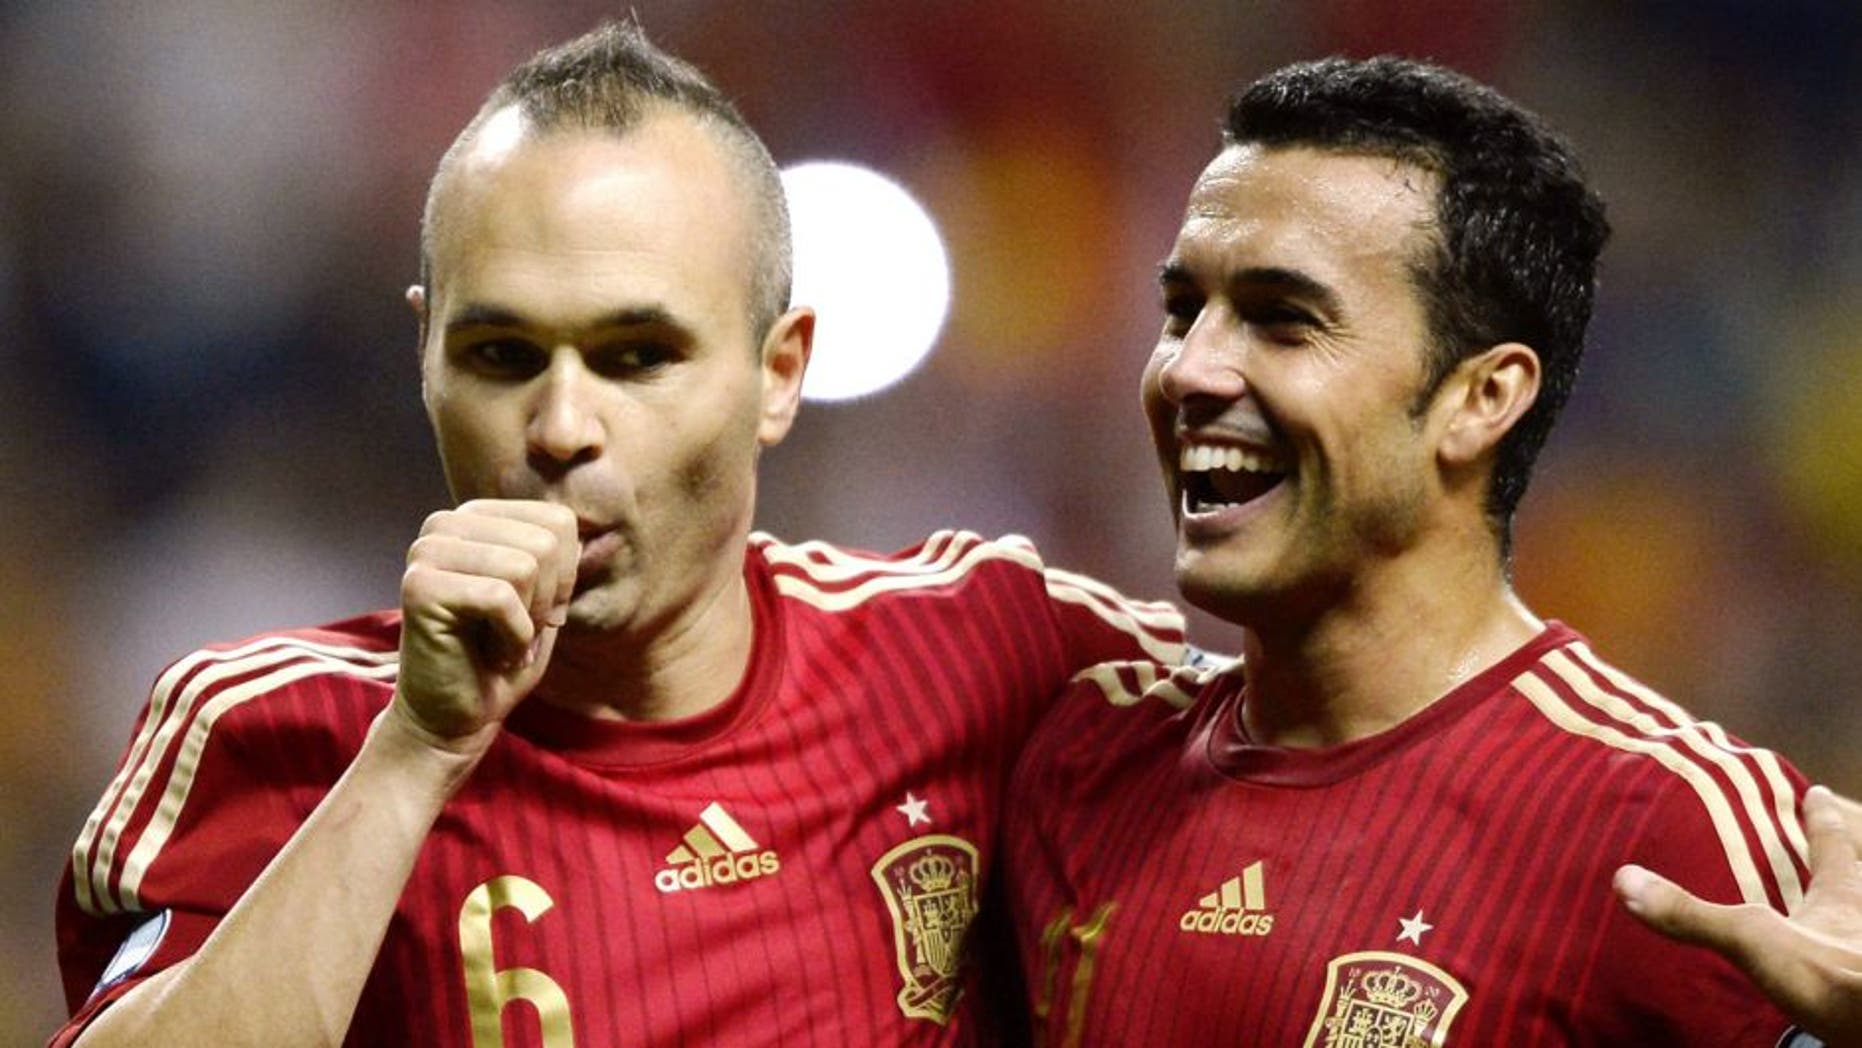 Spain's midfielder Andres Iniesta (L) celebrates with Spain's forward Pedro Rodriguez after scoring a goal during the Euro 2016 qualifying football match Spain vs Slovakia at the Carlos Tartiere stadium in Oviedo on September 5, 2015. AFP PHOTO/ MIGUEL RIOPA (Photo credit should read MIGUEL RIOPA/AFP/Getty Images)